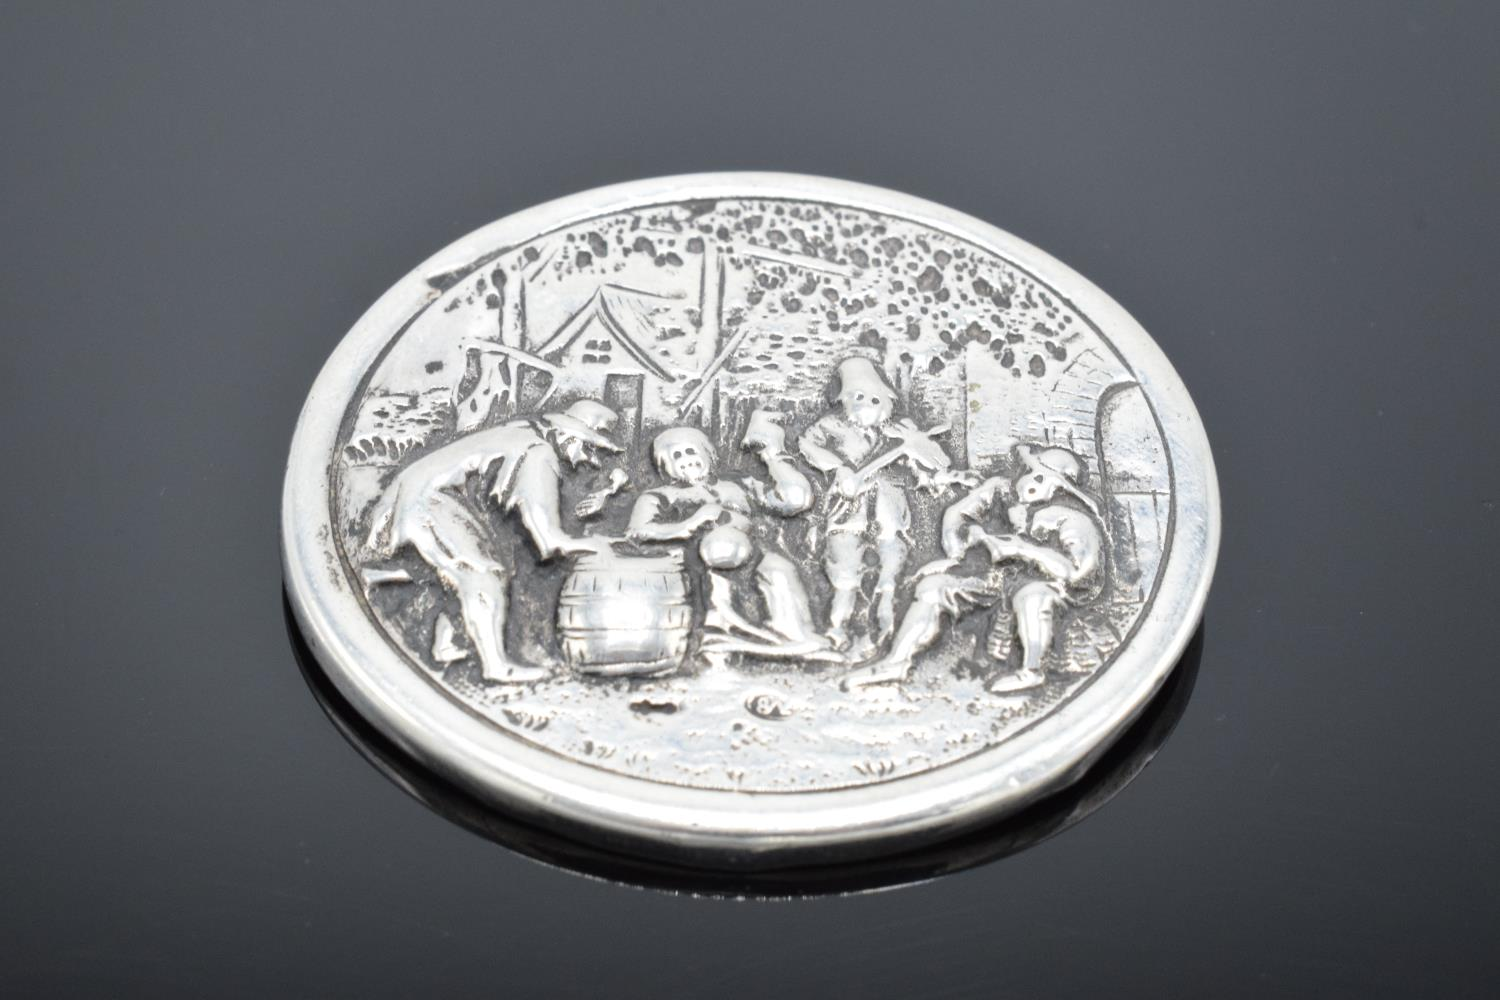 A late 19th/ early 20th century circular silver brooch depicting dutch style scenes with a base - Image 2 of 4